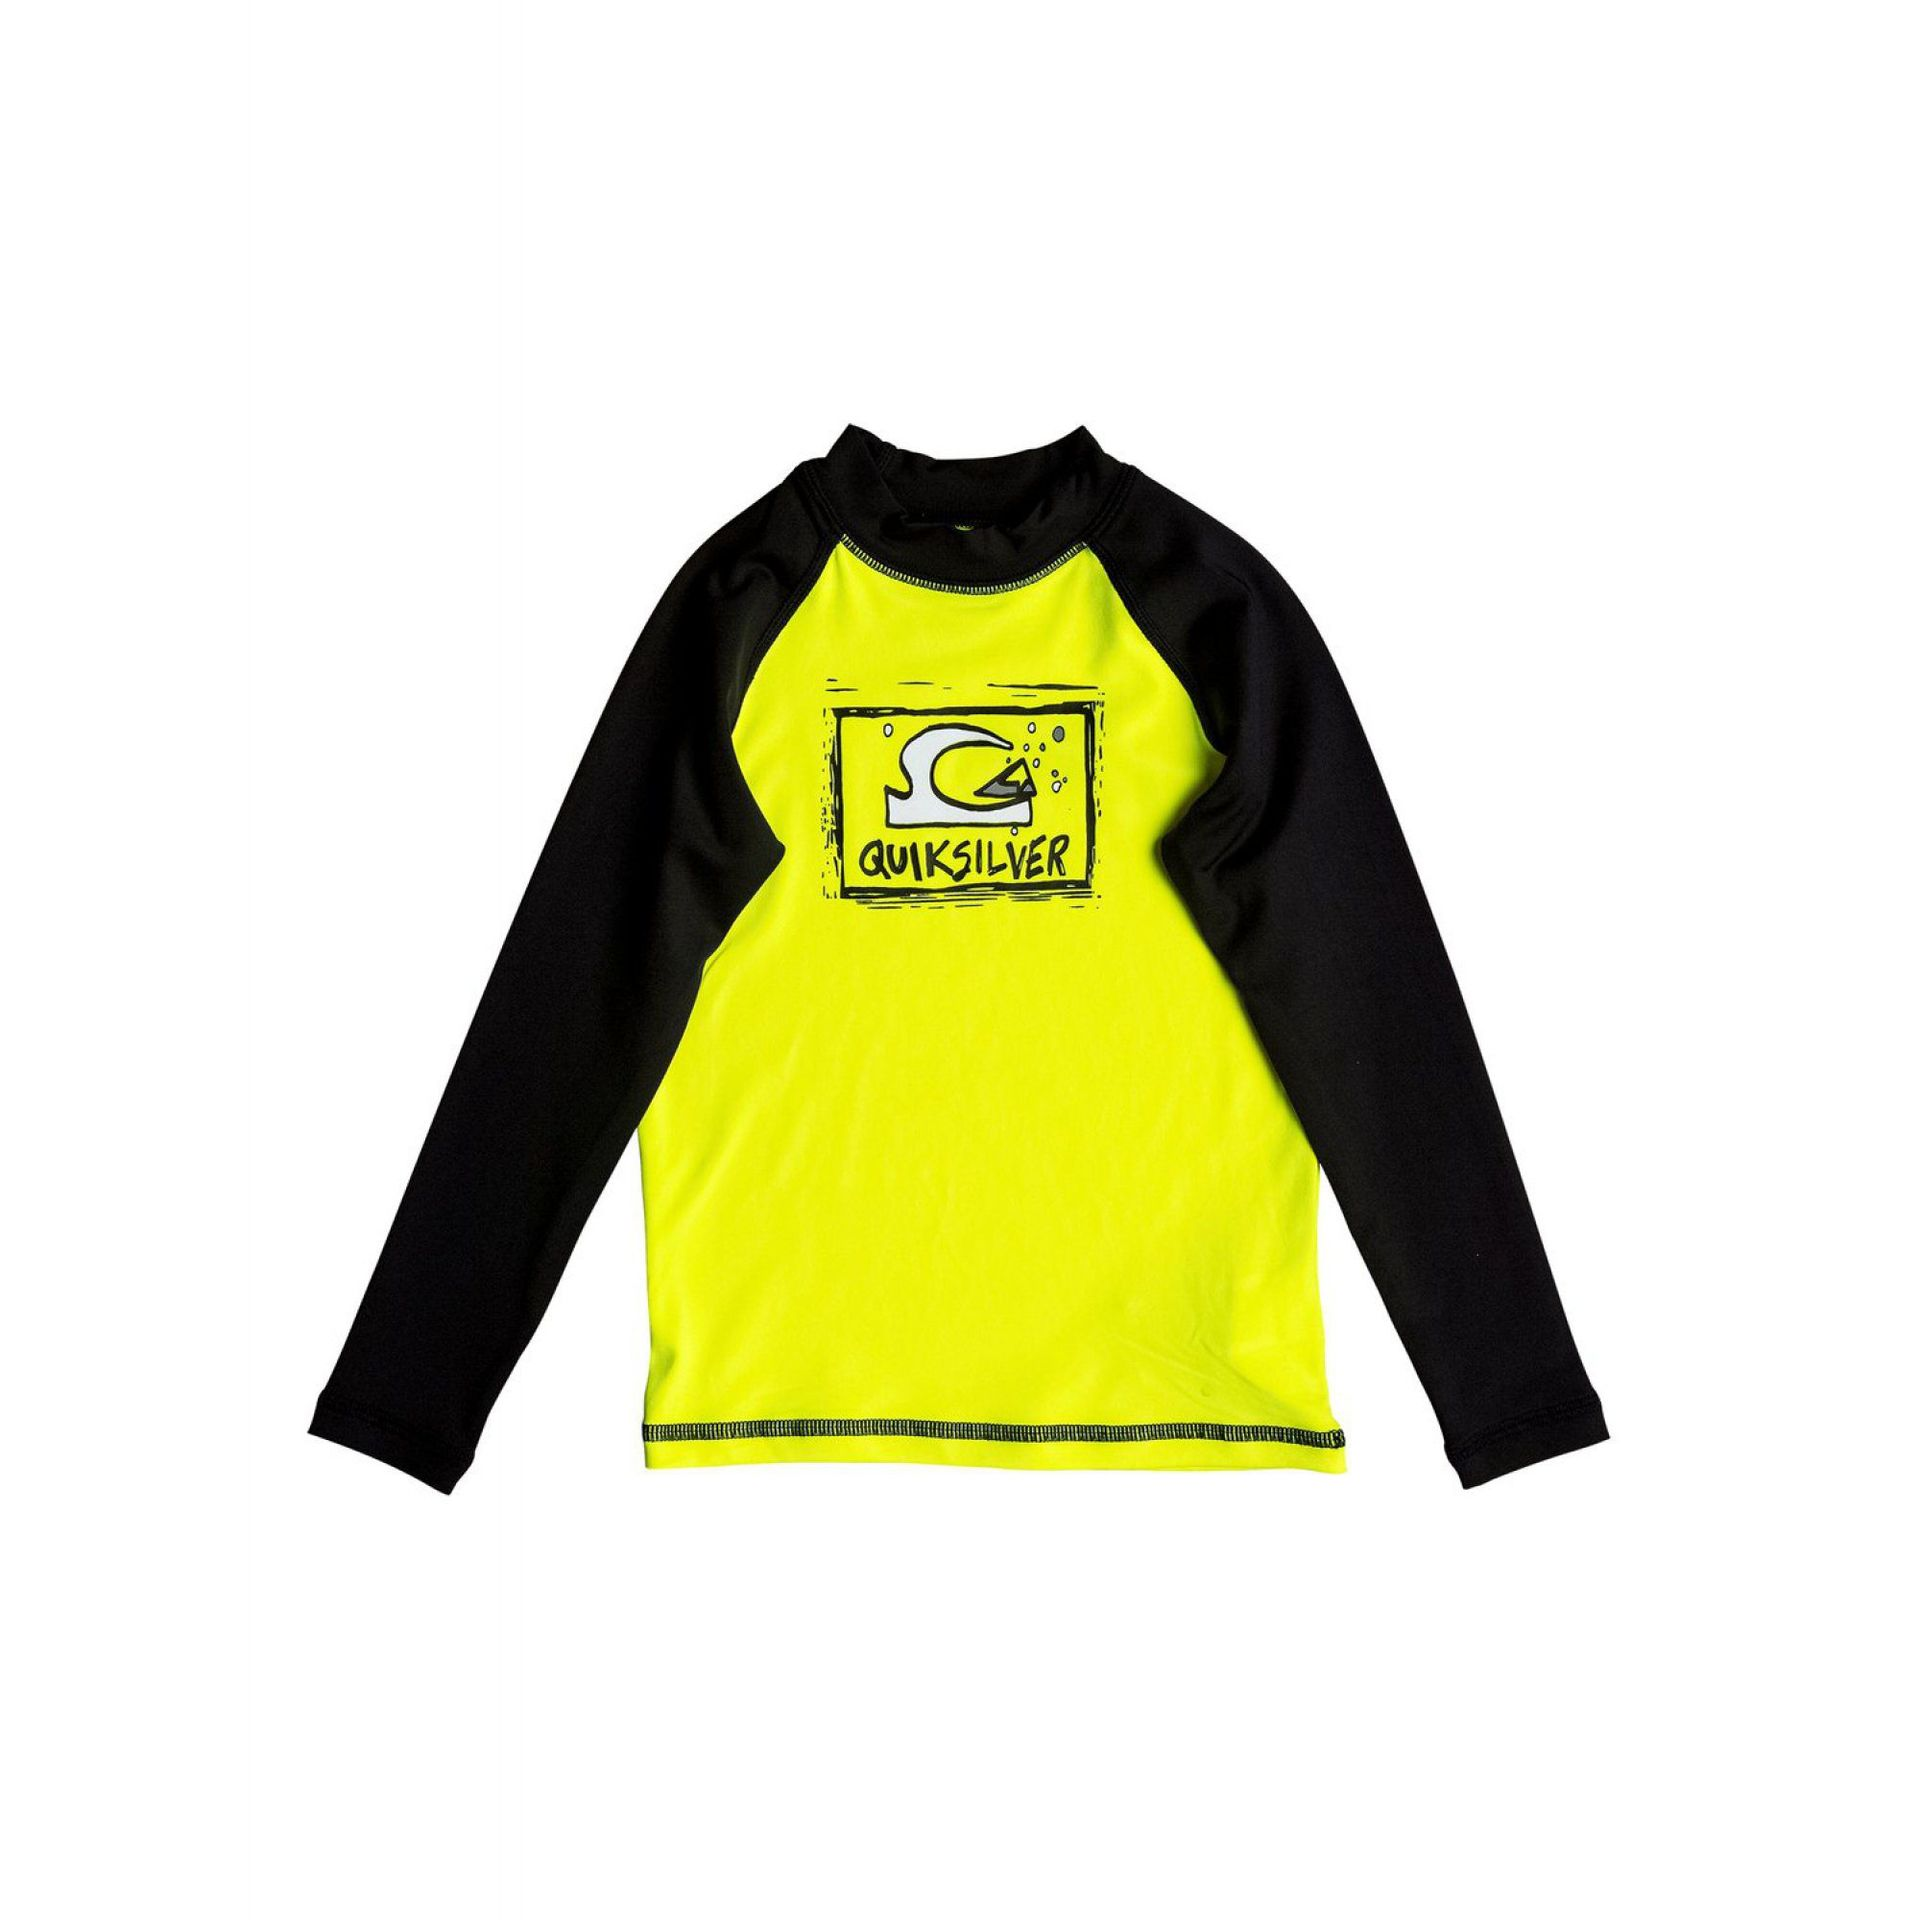 LYCRA QUIKSILVER BUBBLE DREAM LS RASH VEST SAFETY YELLOW BLACK